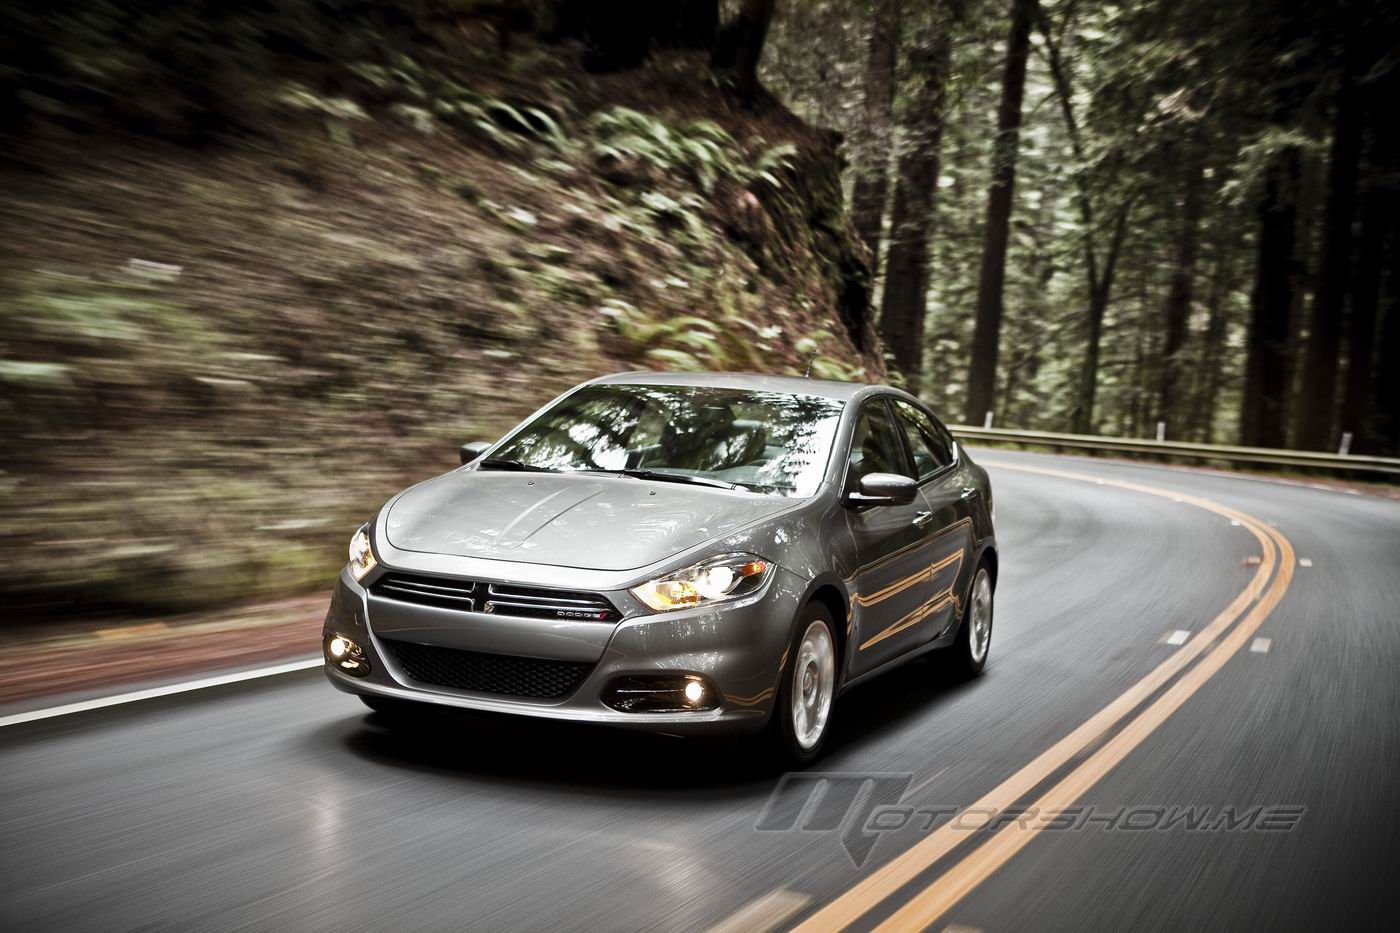 2016 Dodge Dart Delivers Cutting Edge Style Technology And Safety Features